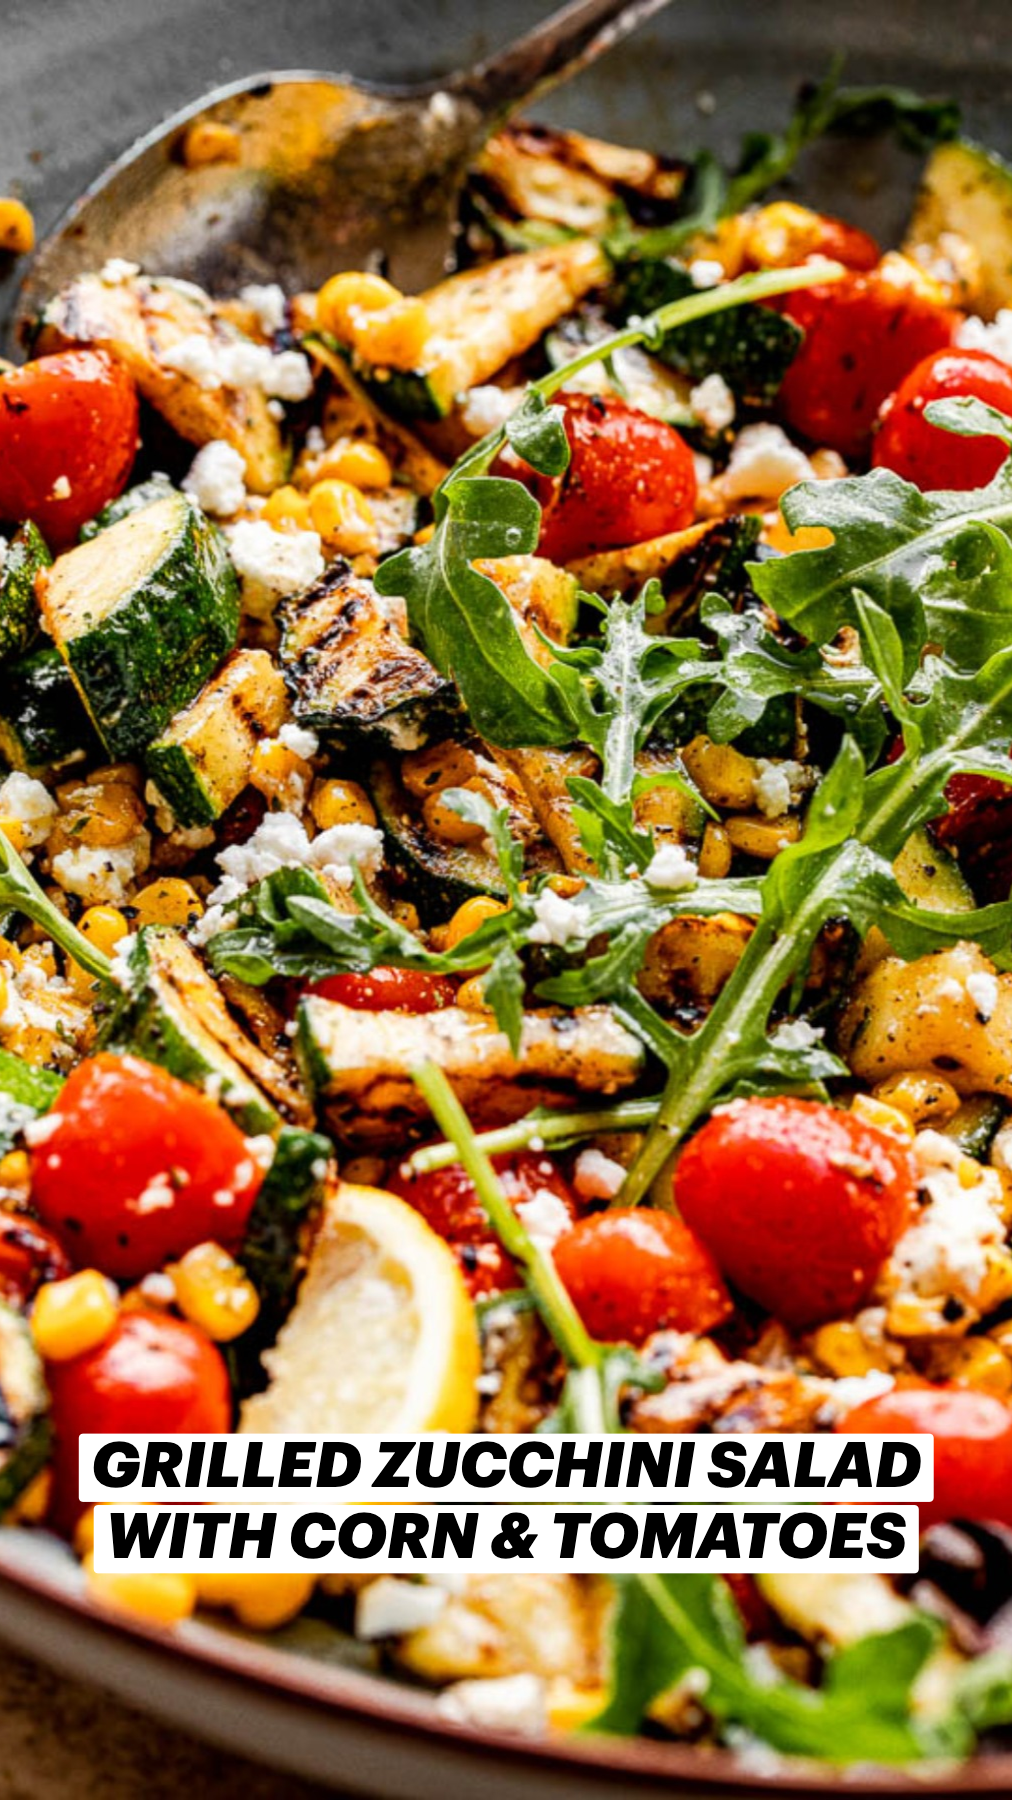 GRILLED ZUCCHINI SALAD WITH CORN & TOMATOES